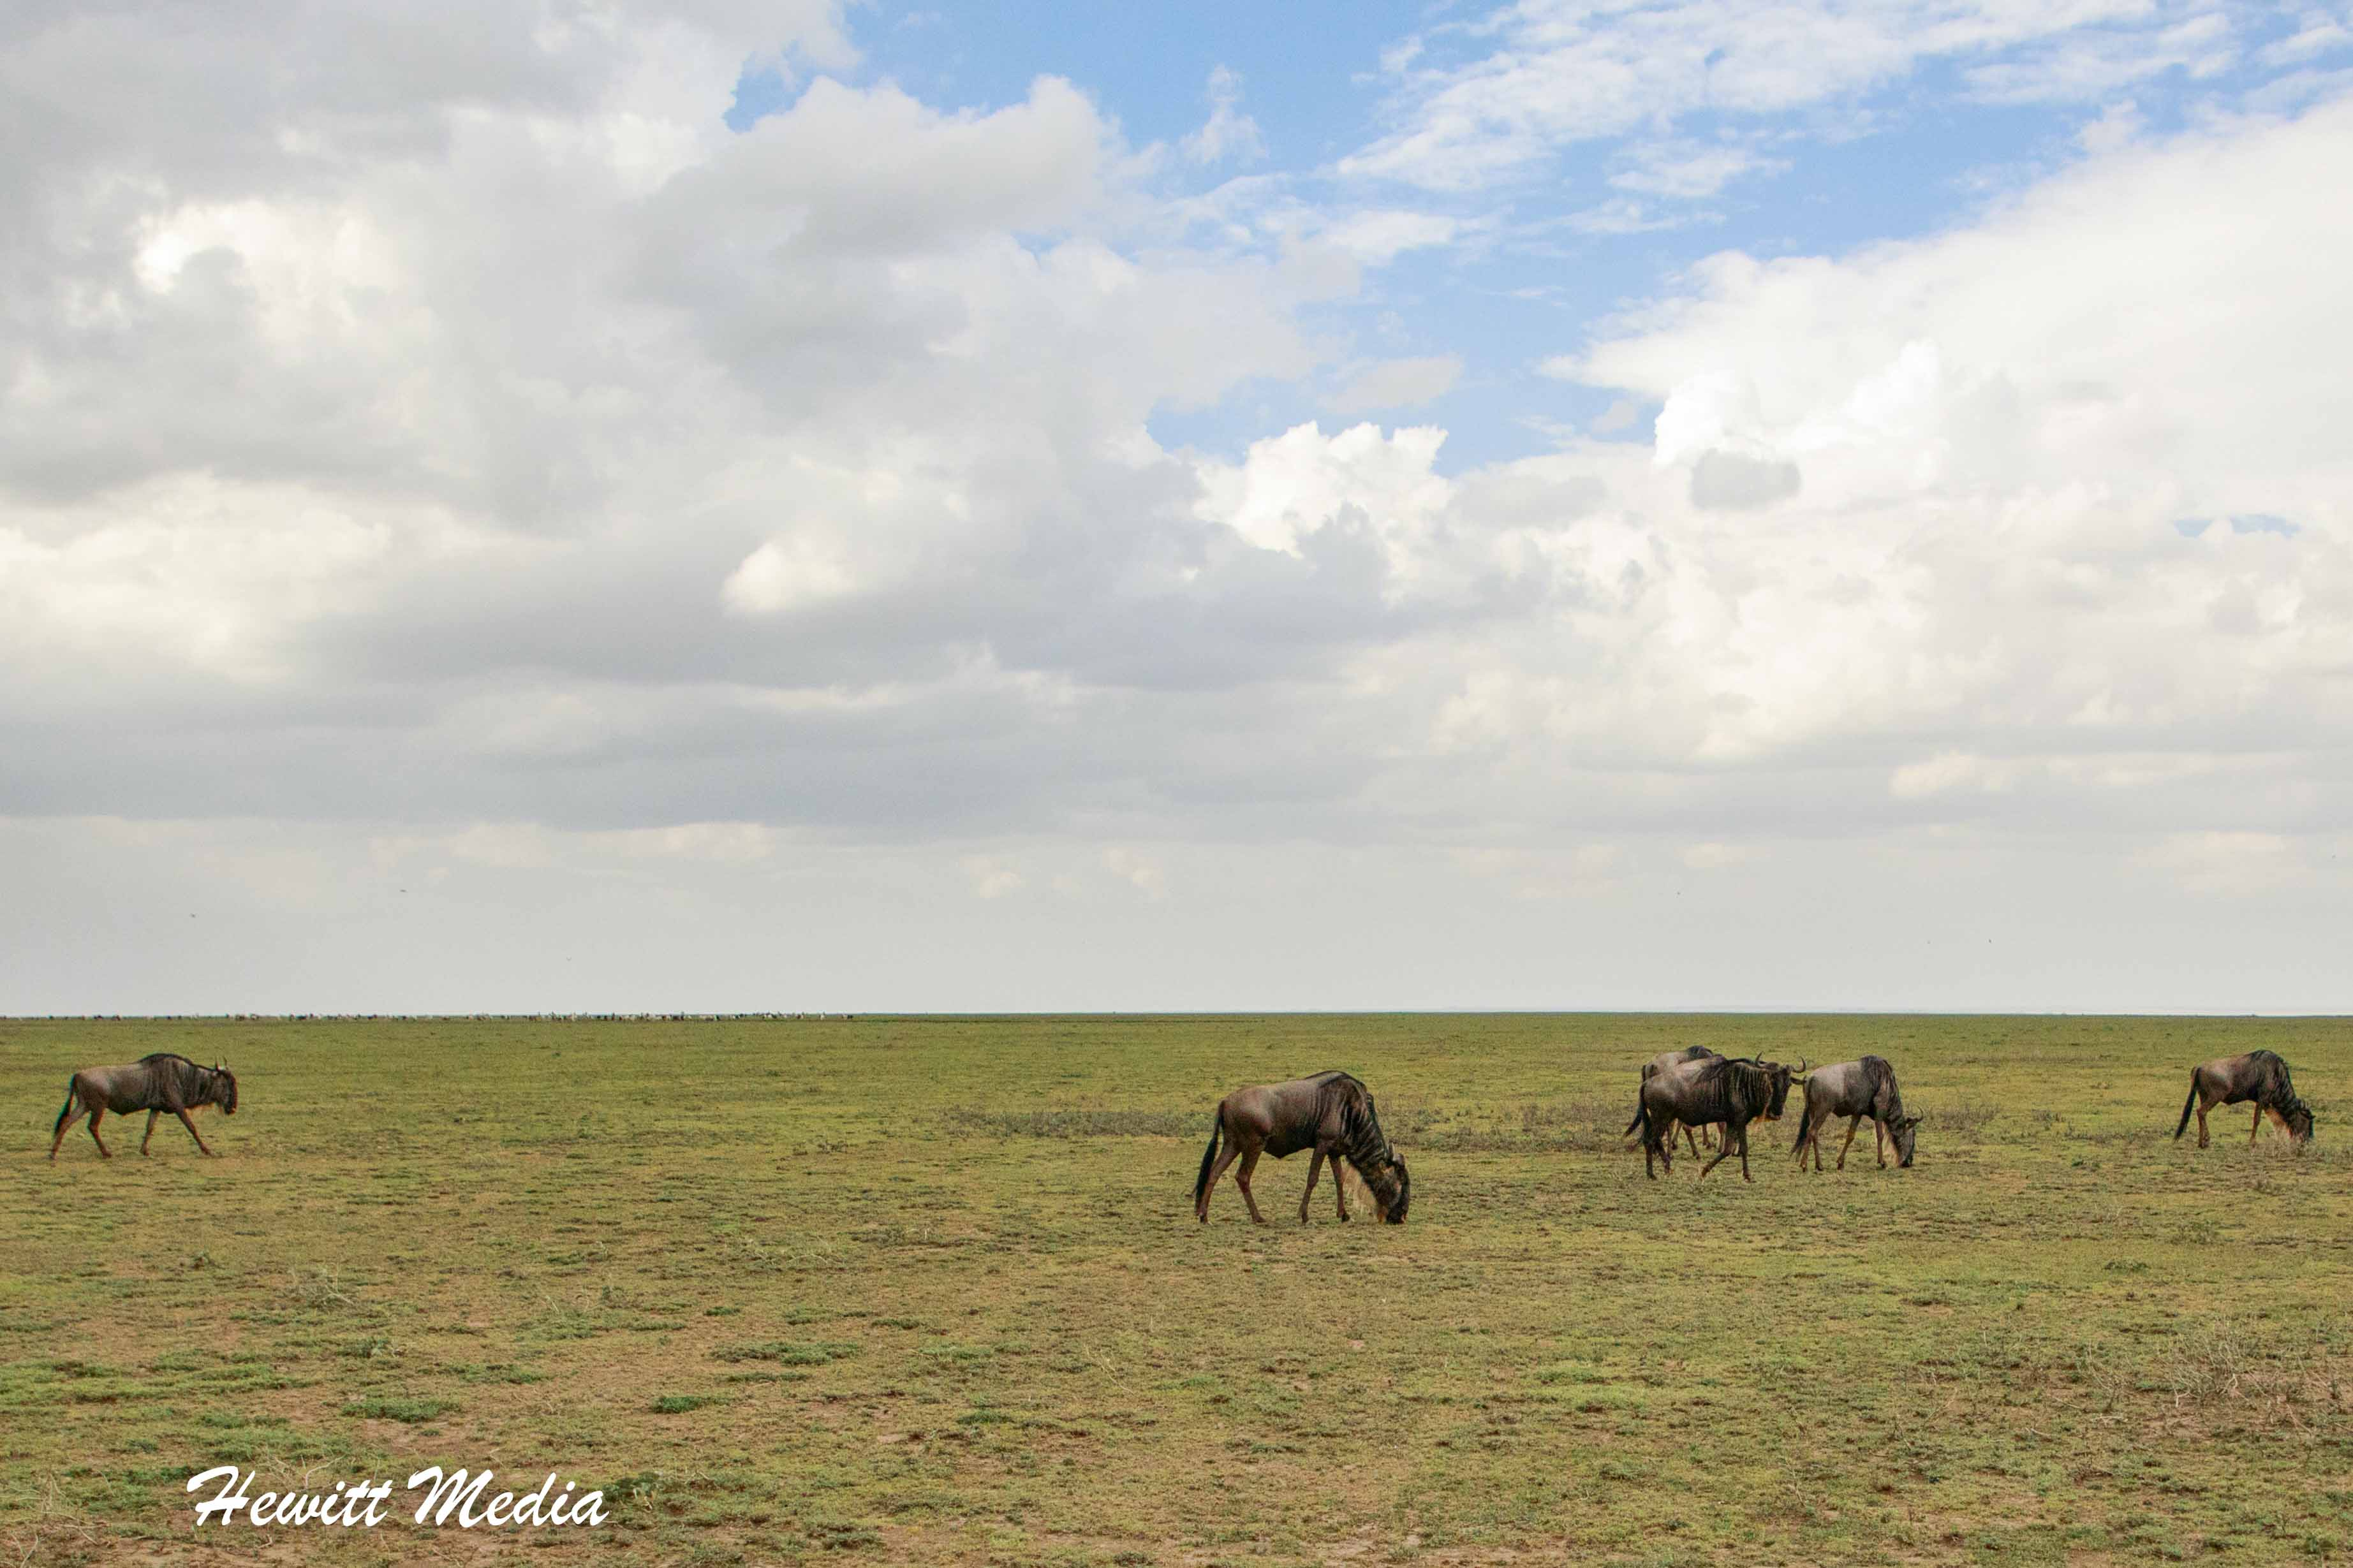 Wildebeest in the Serengeti National Park